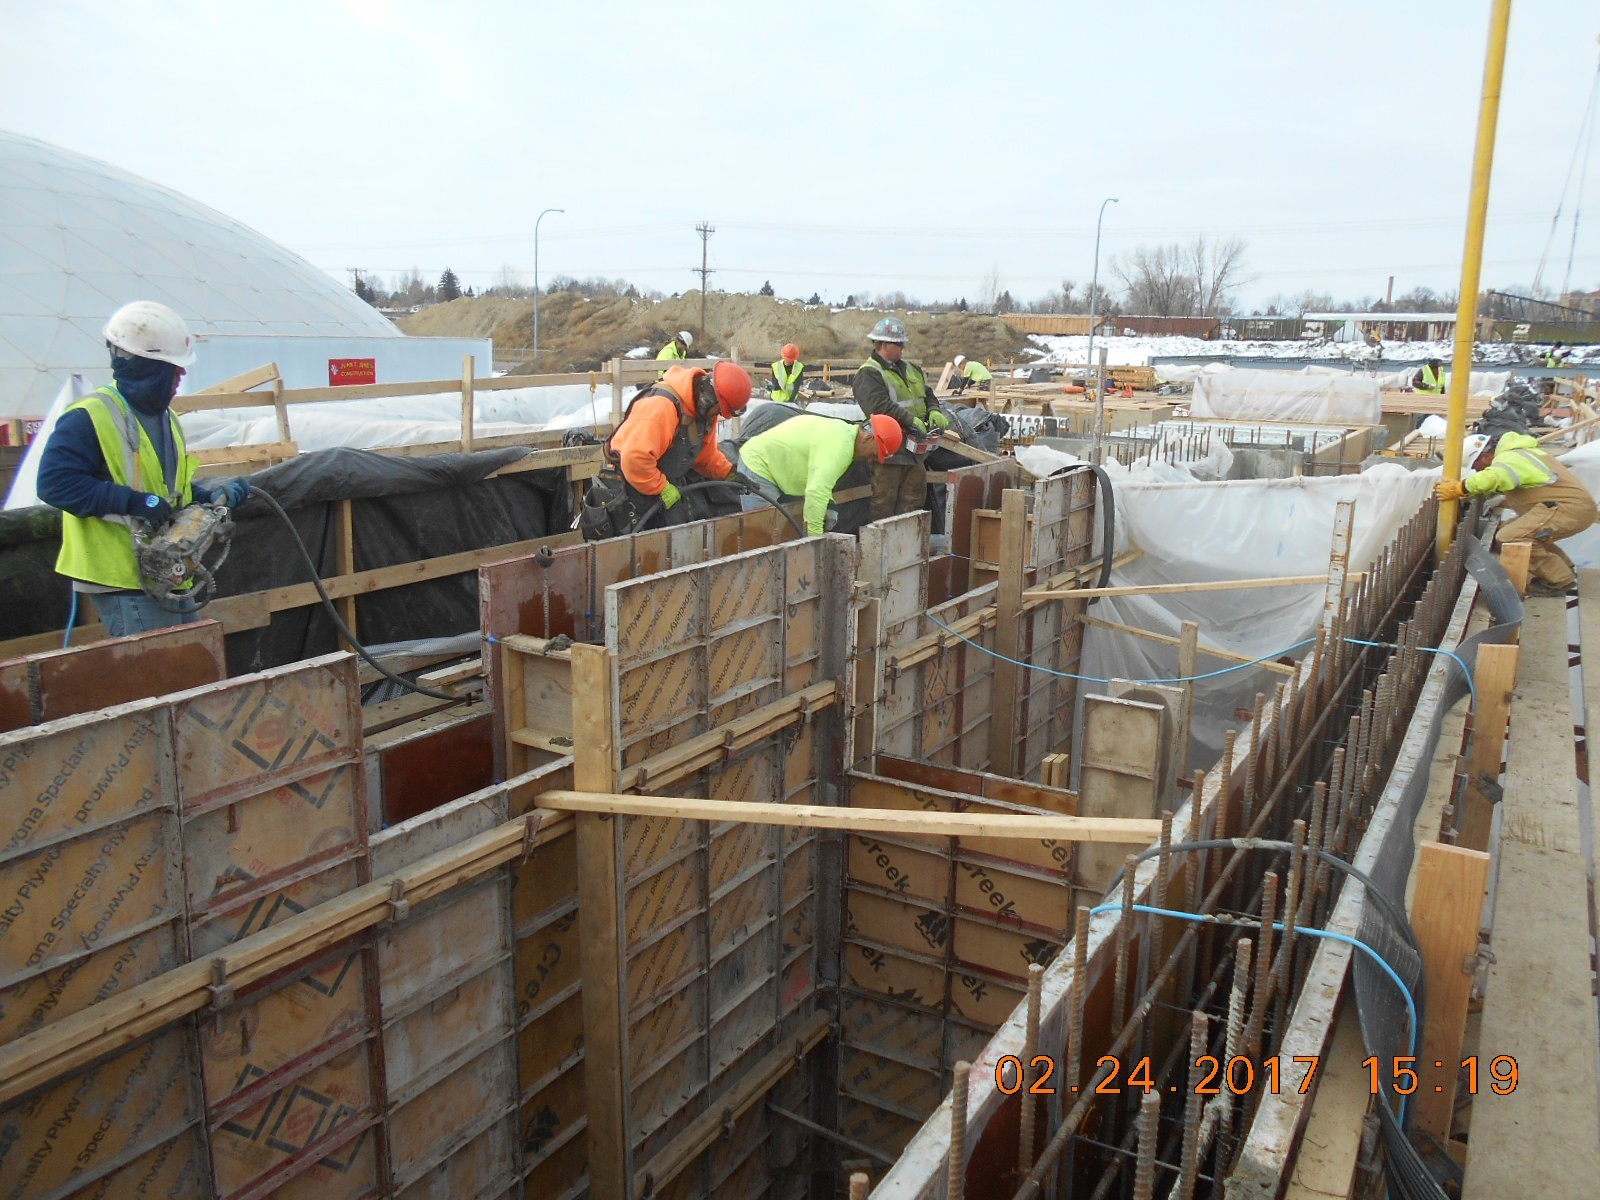 JTJ placing concrete for the Ozone Basin west wall and wall W208.